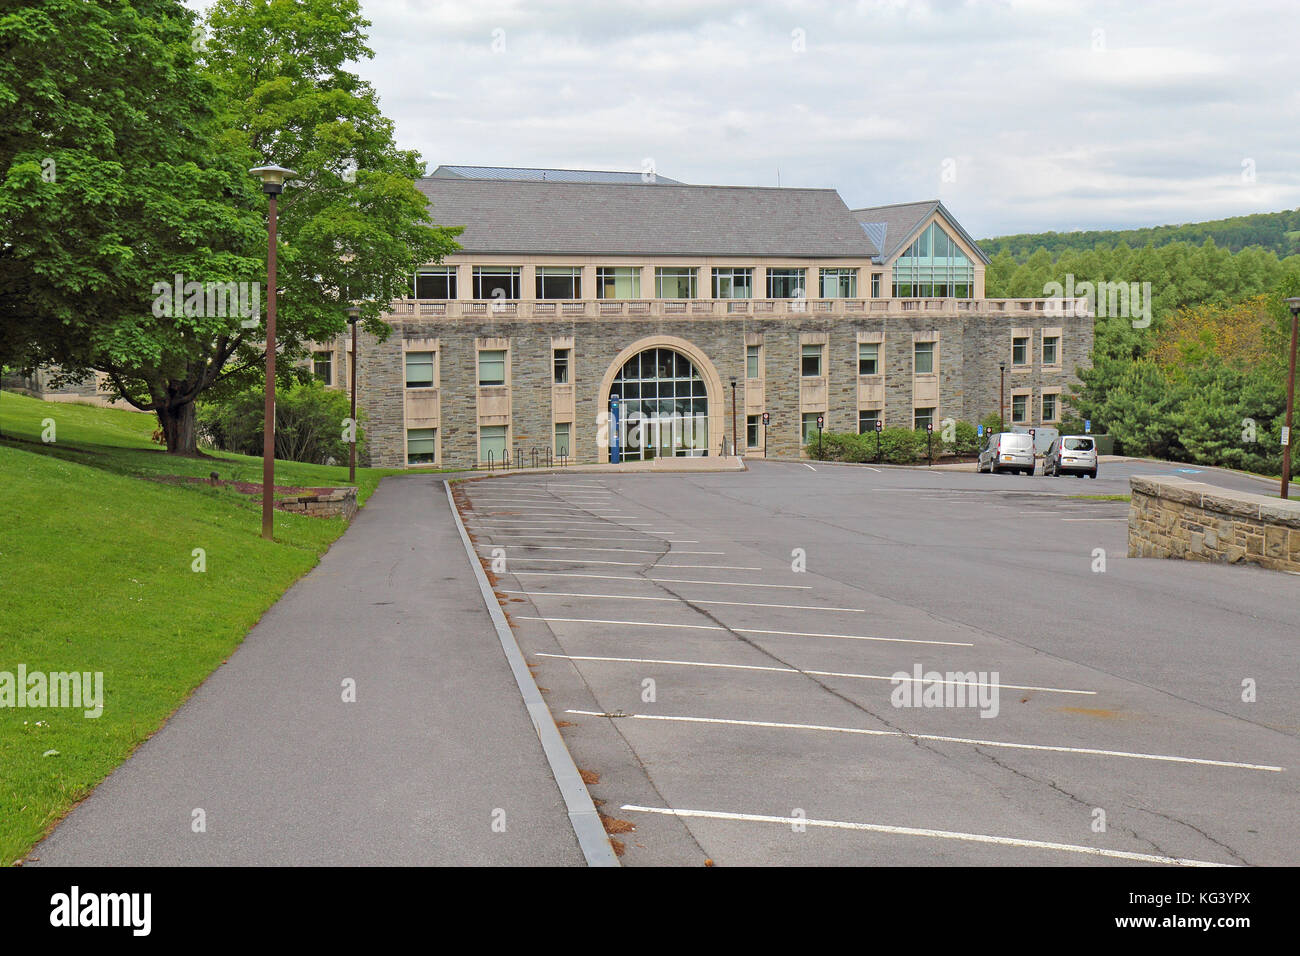 HAMILTON, NEW YORK - MAY 28 2017: The Case-Geyer library building on the campus of Colgate University in the village Stock Photo